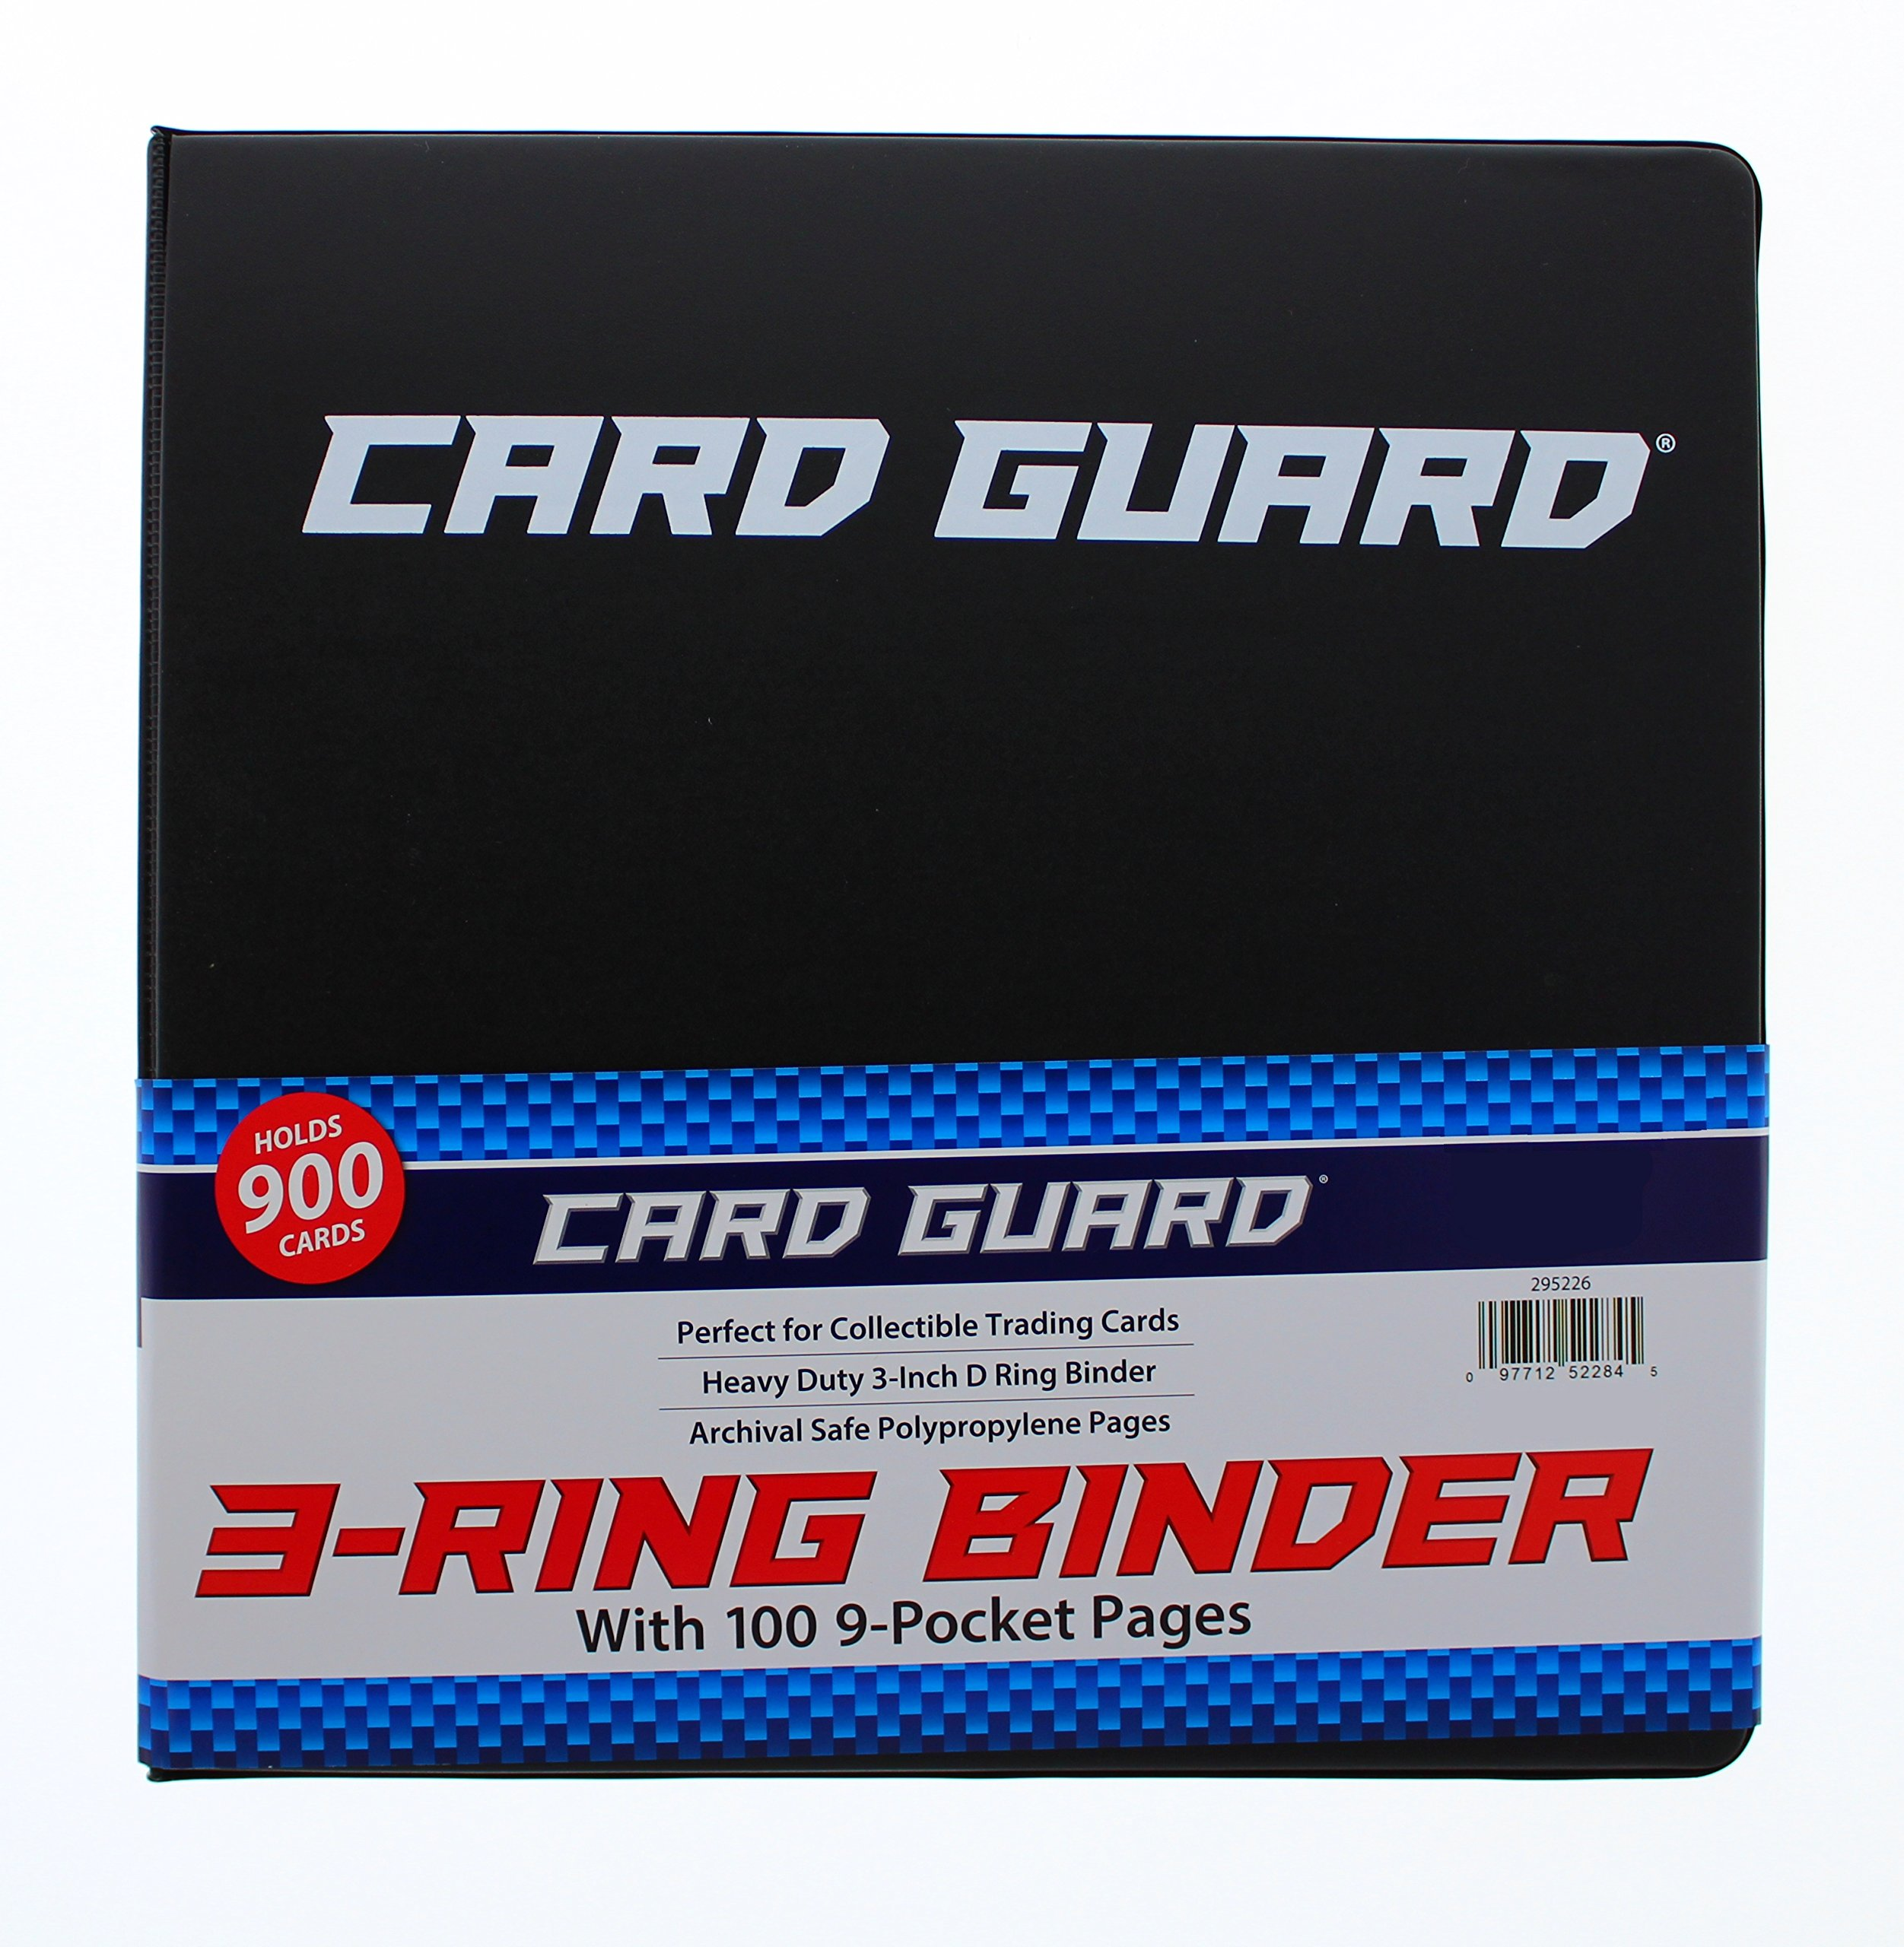 CardGuard 3 Ring Binder Holder, with 100 9-Pocket Pages |Plastic Pocket Sleeve Book to Hold Your Collectible Trading Cards